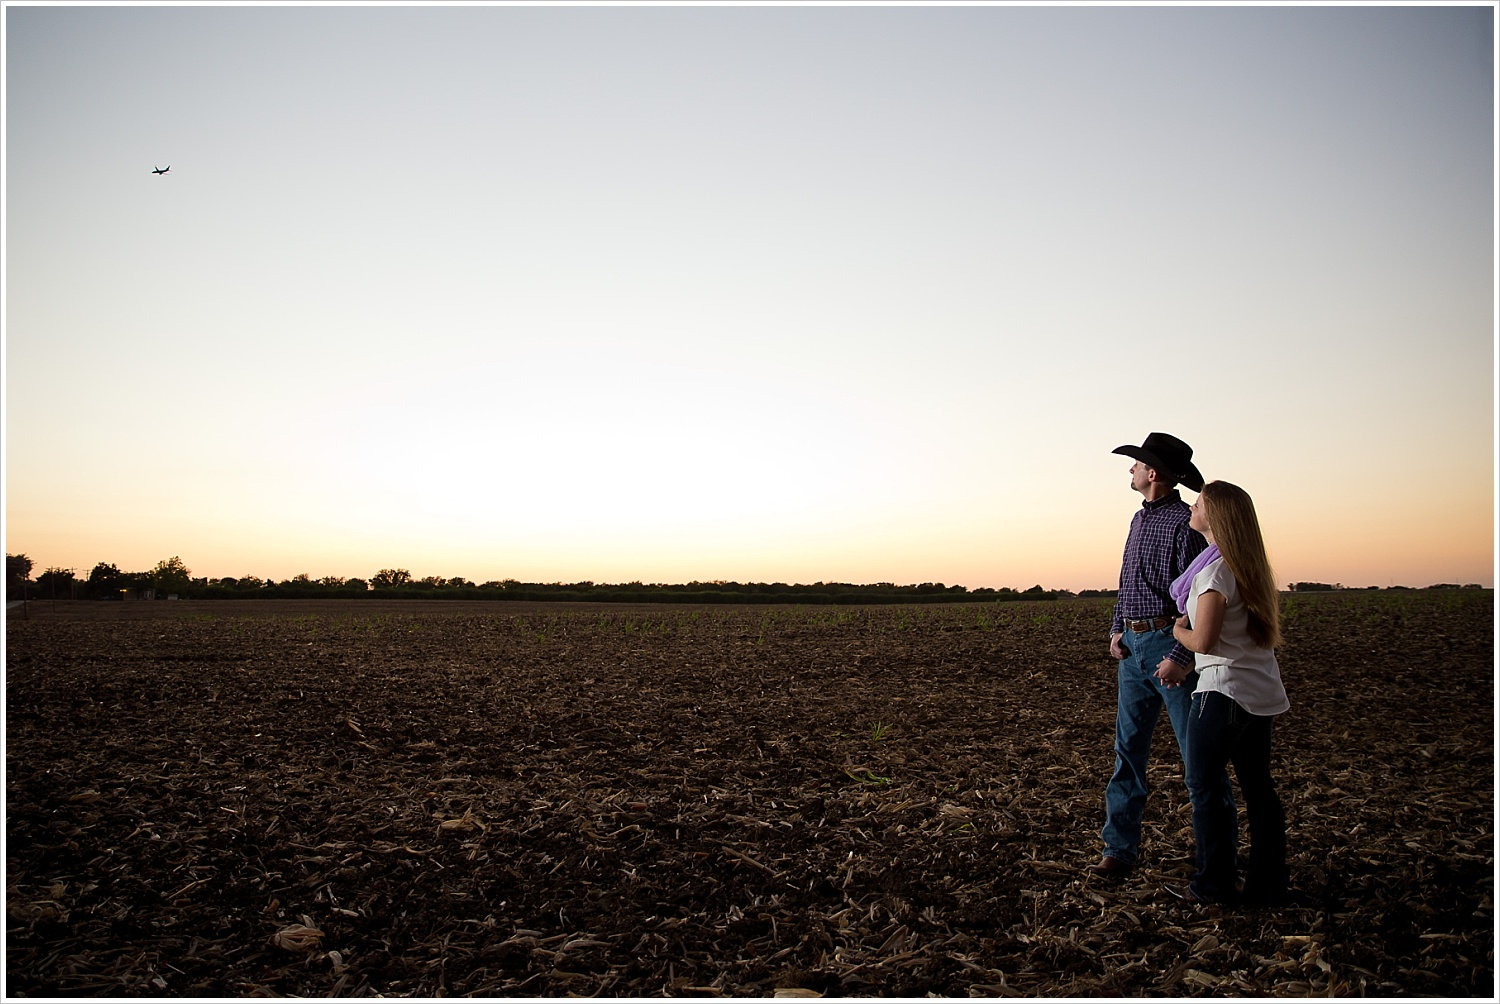 a couple watch an airplane fly over them | West, Texas Engagement Portraits | Jason & Melaina Photography